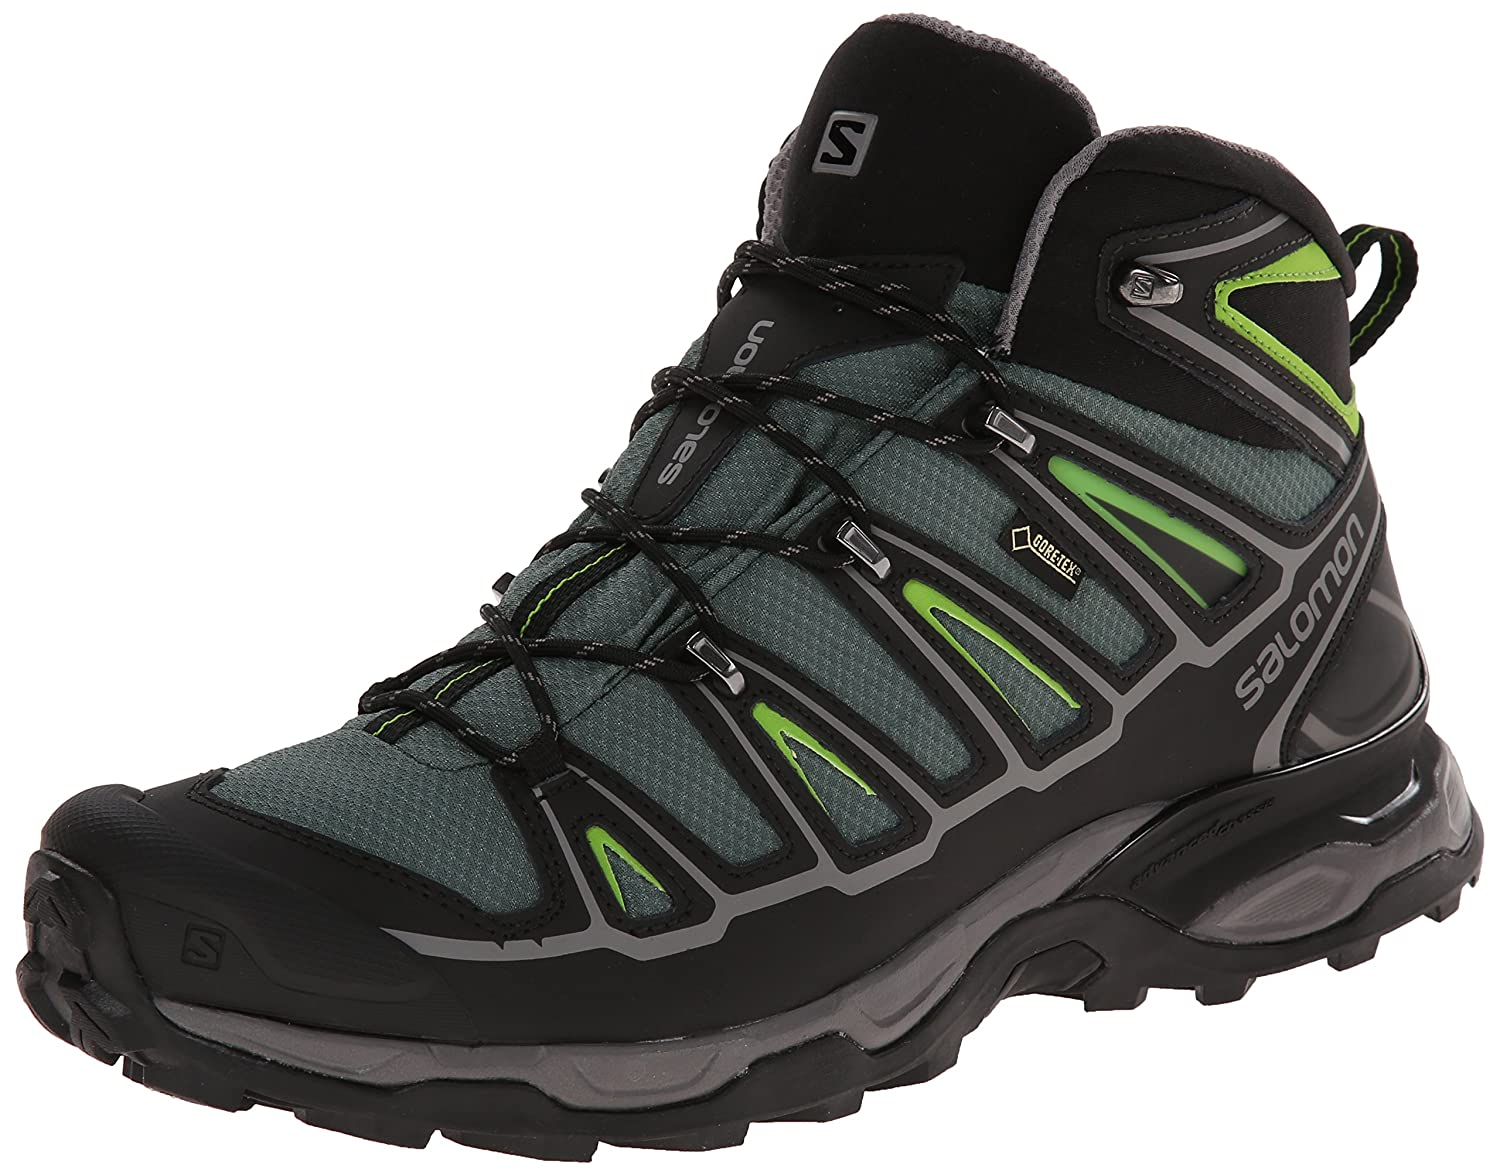 Amazon Best Sellers: Best Men's Hiking Boots